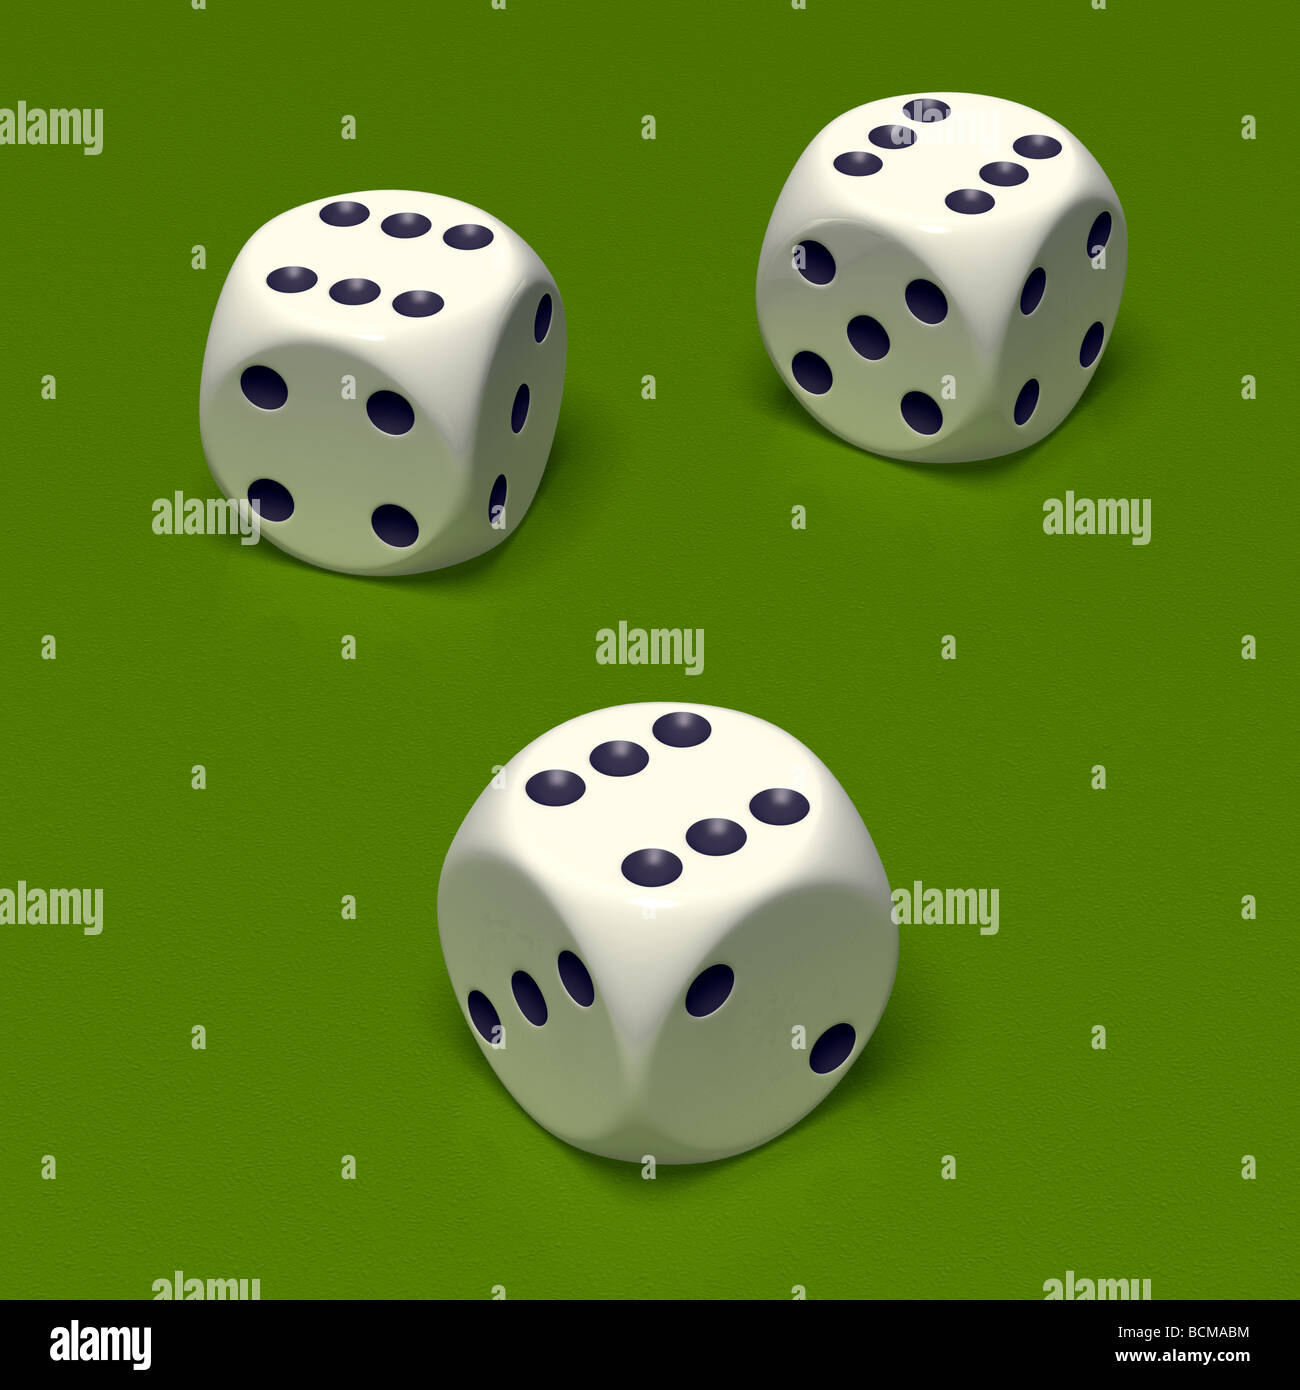 Three white dice on green background Triple six - Stock Image